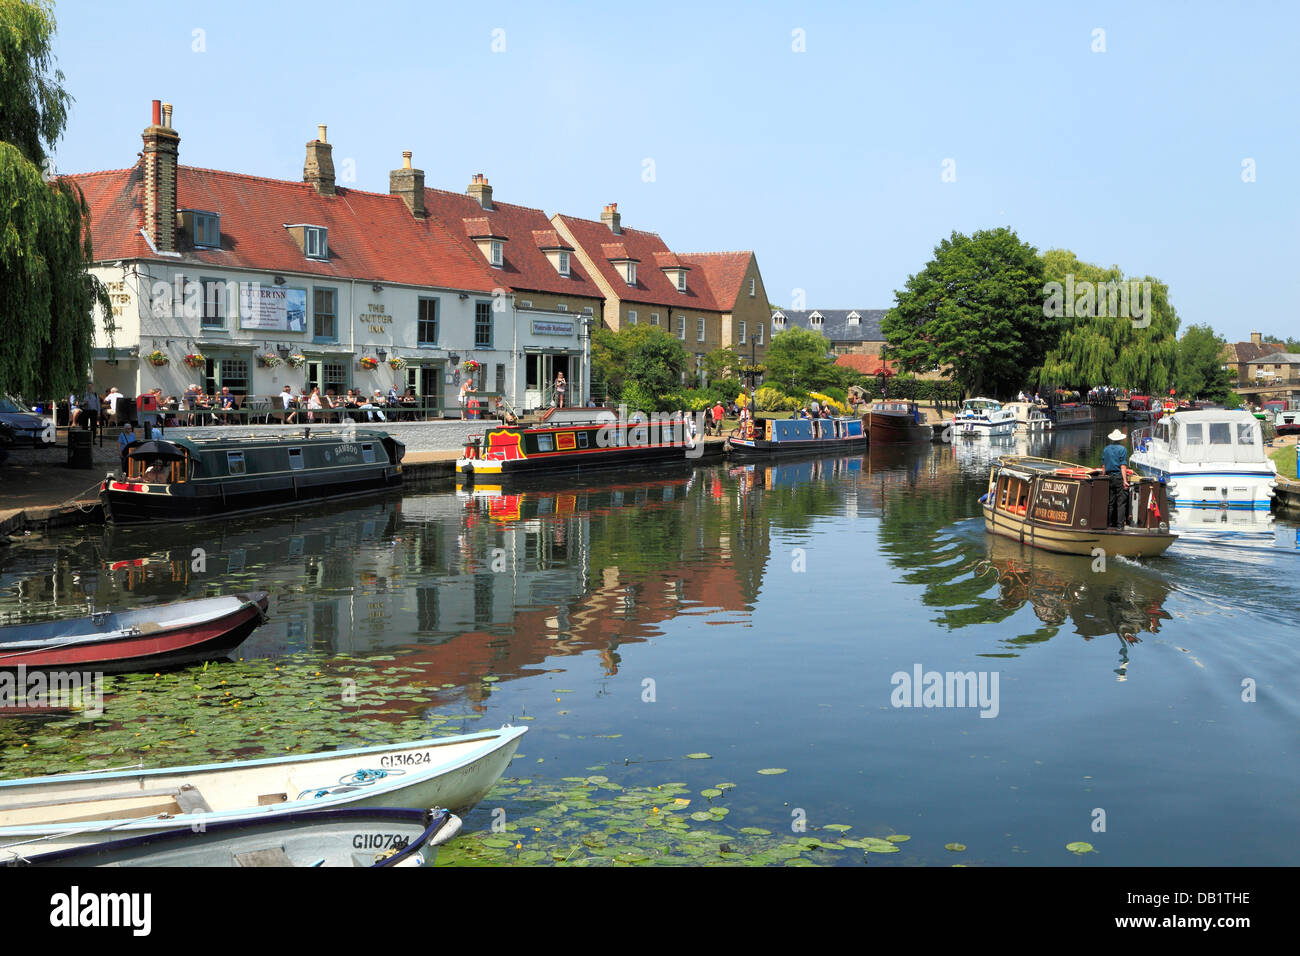 Ely, River Ouse, Cutter Inn, Barges boats English rivers riverside pubs inns pub, Cambridgeshire England UK - Stock Image